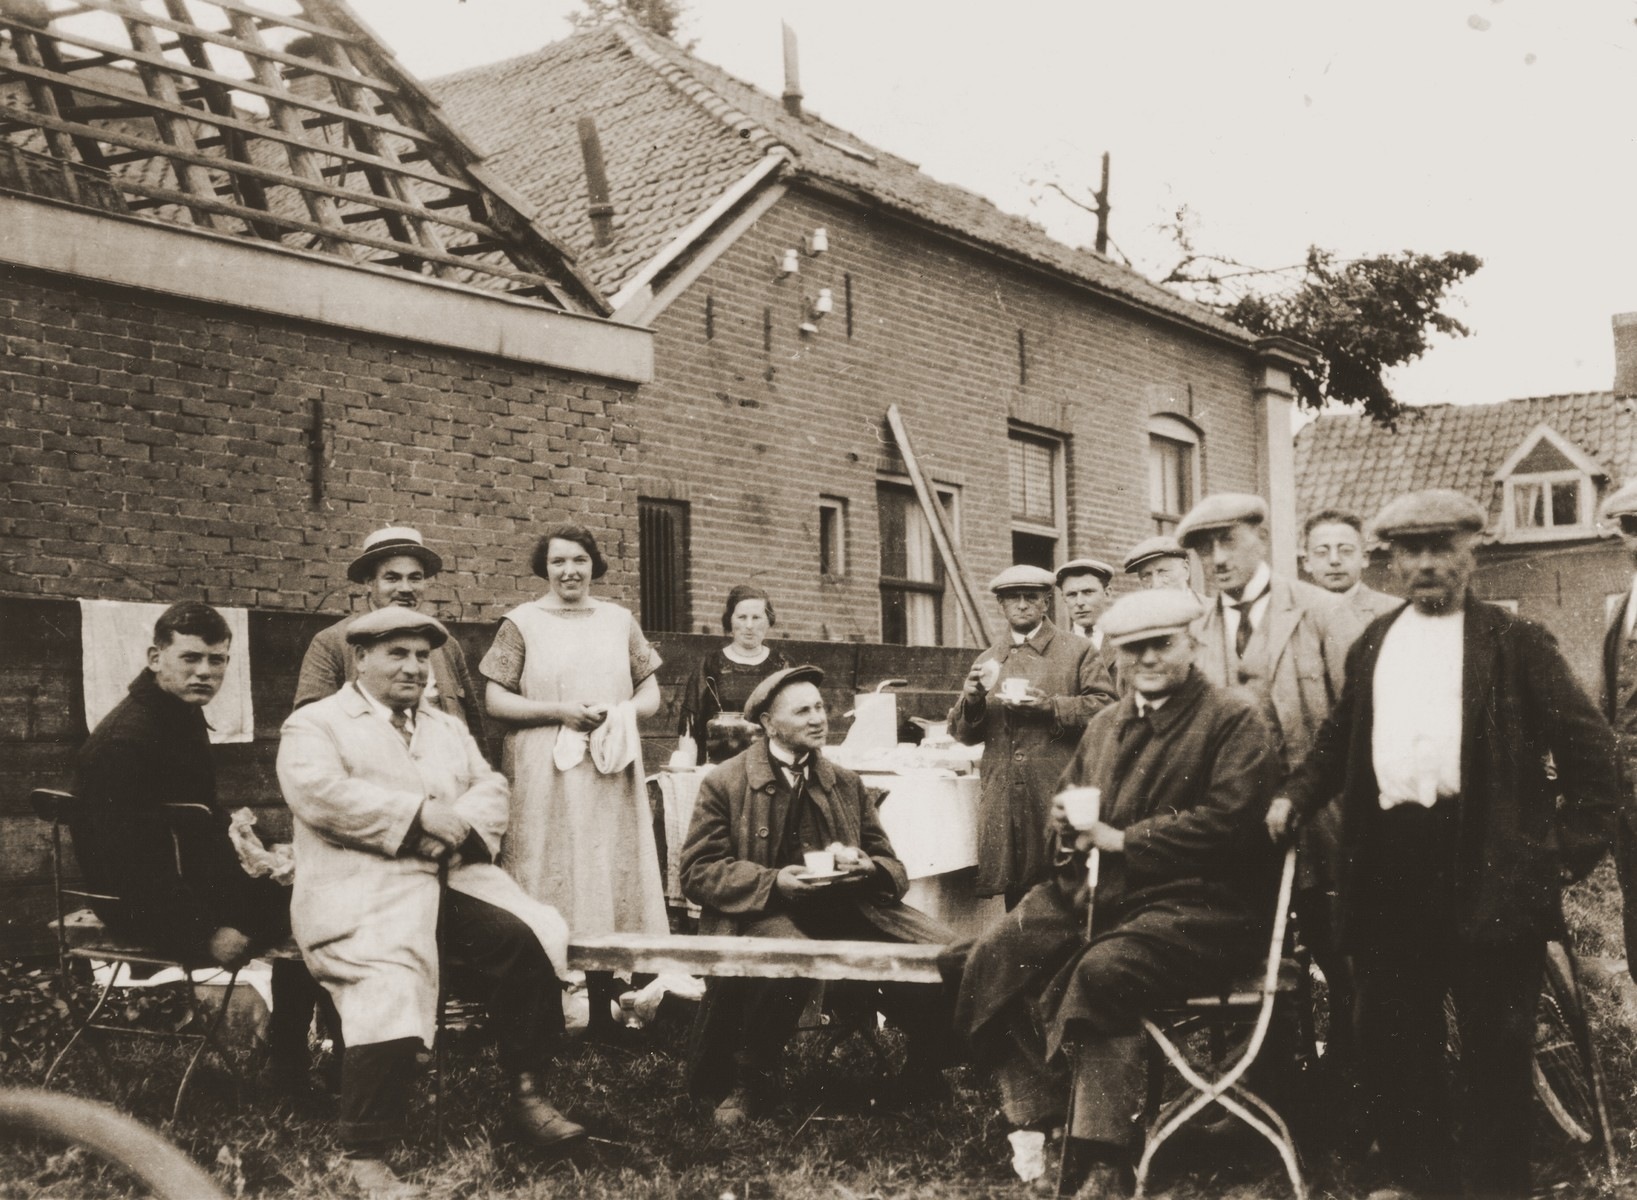 Jewish cattle dealers and Dutch farmers at an outdoor gathering in the vicinity of Boekelo.  Among those pictured are Na Meijer Berg (standing in the center at the back); Leon Berg (second from the left in the light coat); and Joseph Meijer (partially hidden in the back, third from the left).